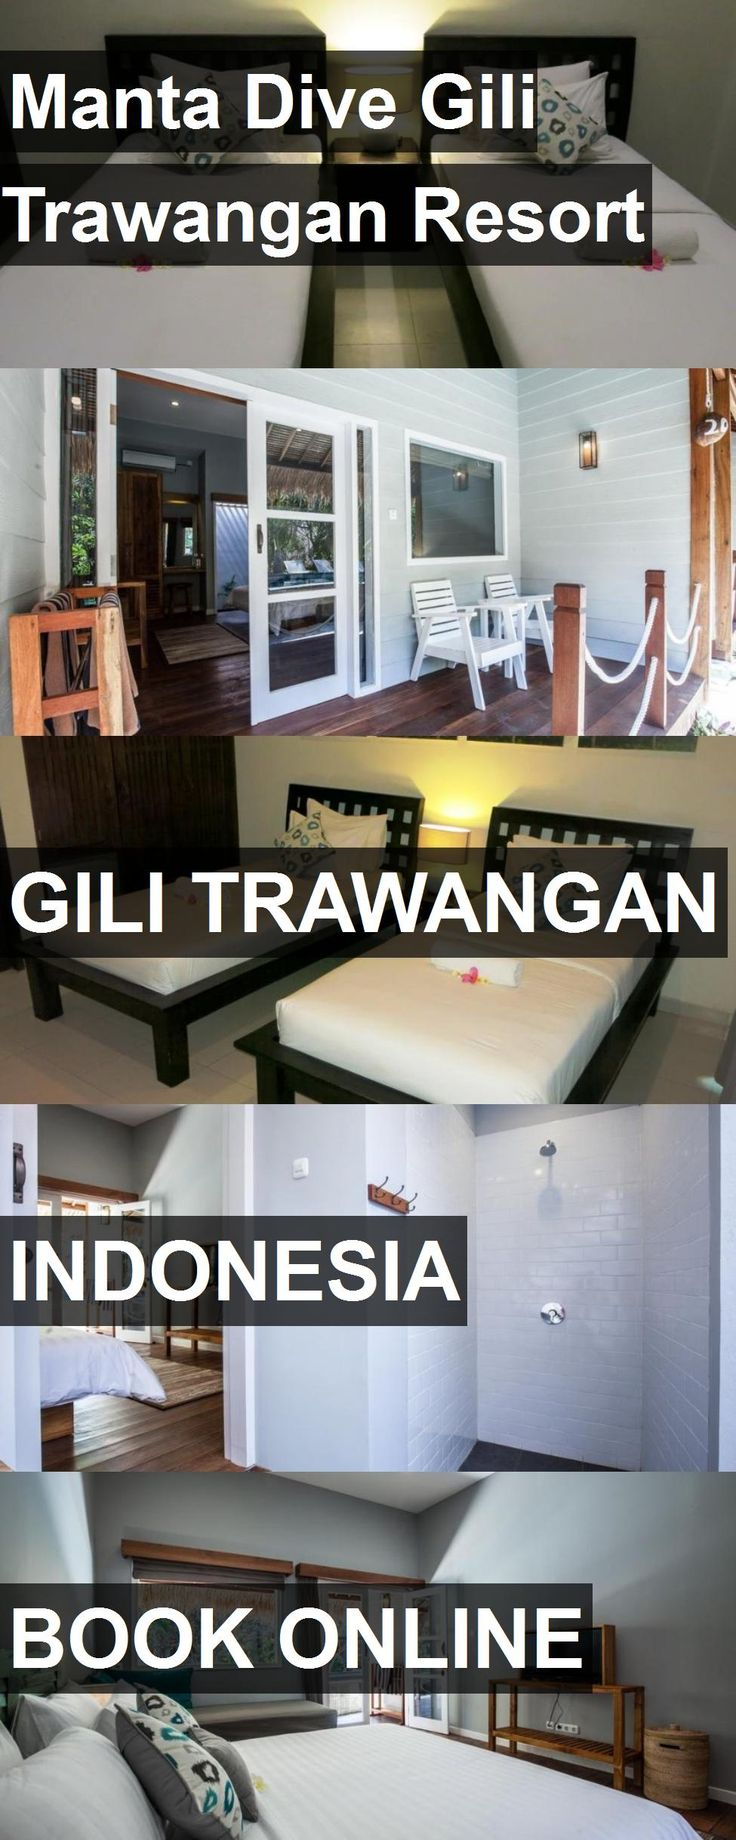 Hotel Manta Dive Gili Trawangan Resort in Gili Trawangan, Indonesia. For more information, photos, reviews and best prices please follow the link. #Indonesia #GiliTrawangan #MantaDiveGiliTrawanganResort #hotel #travel #vacation